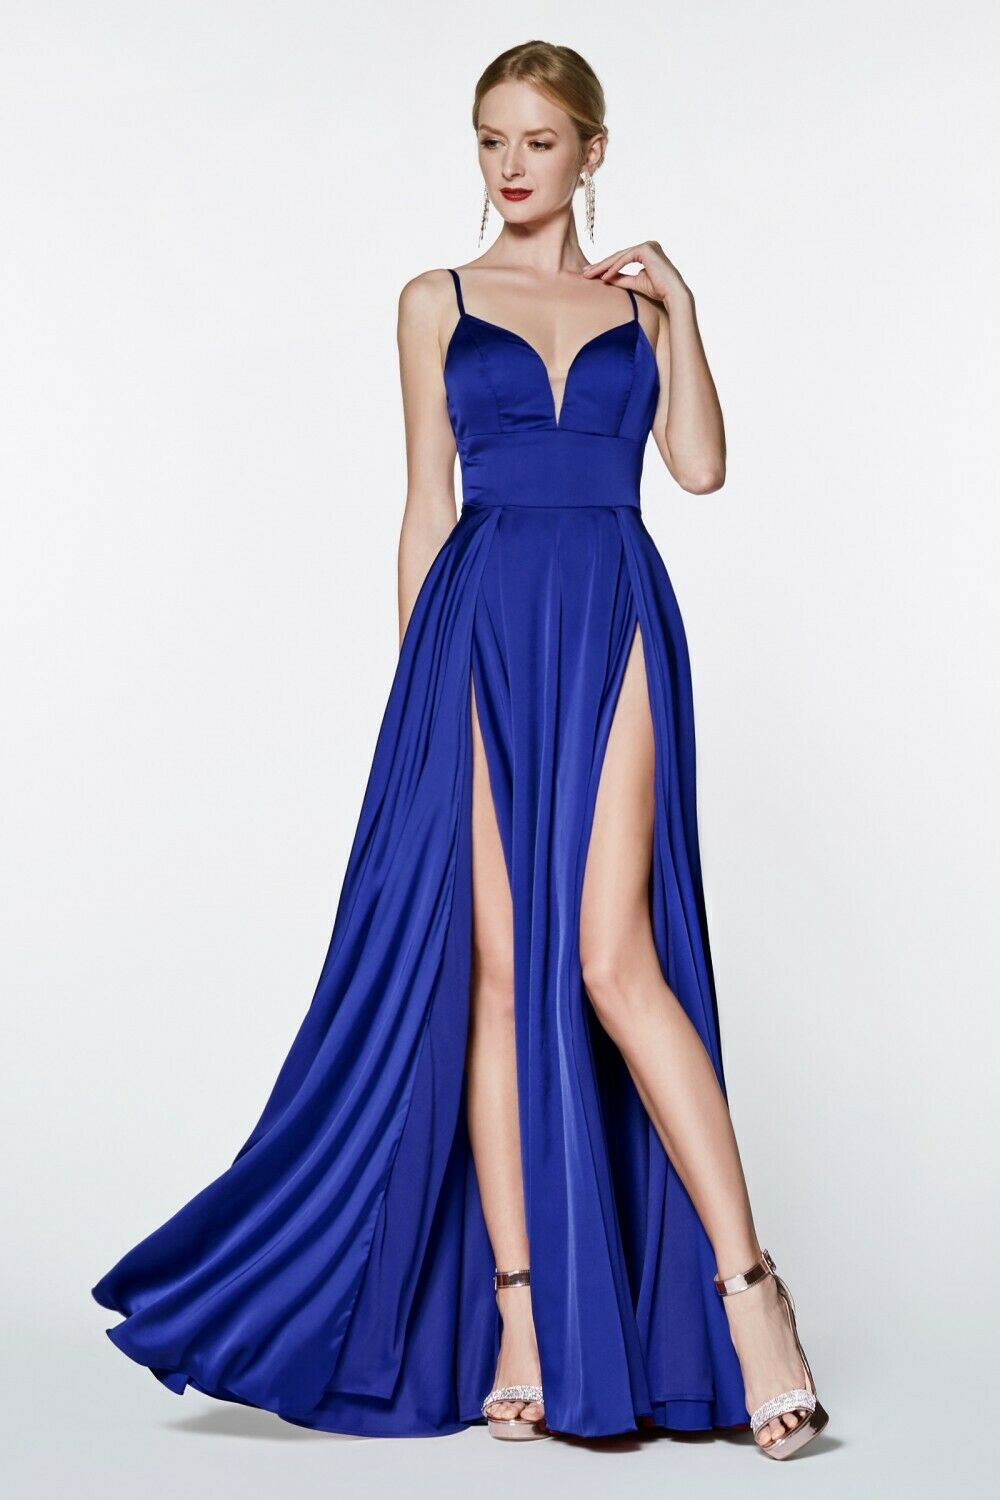 Cinderella Divine CJ526 CJ526 CJ526 Evening Dress Prom Dress A-line satin gown double slit befee8